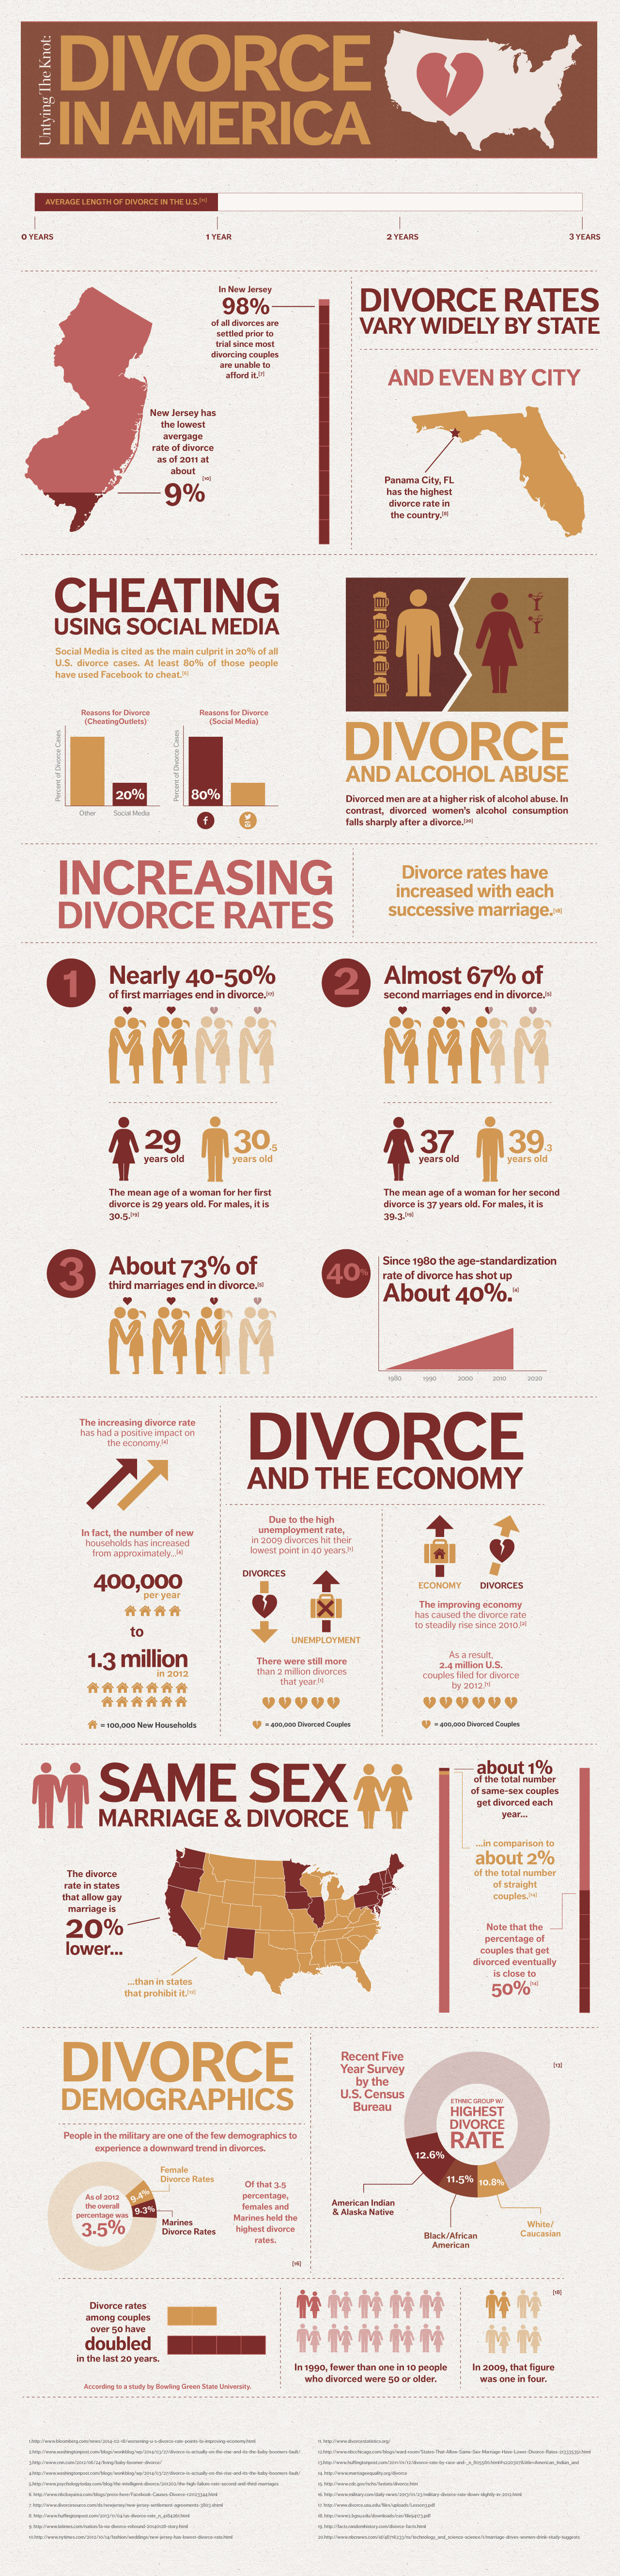 Untying the Knot: Divorce in America